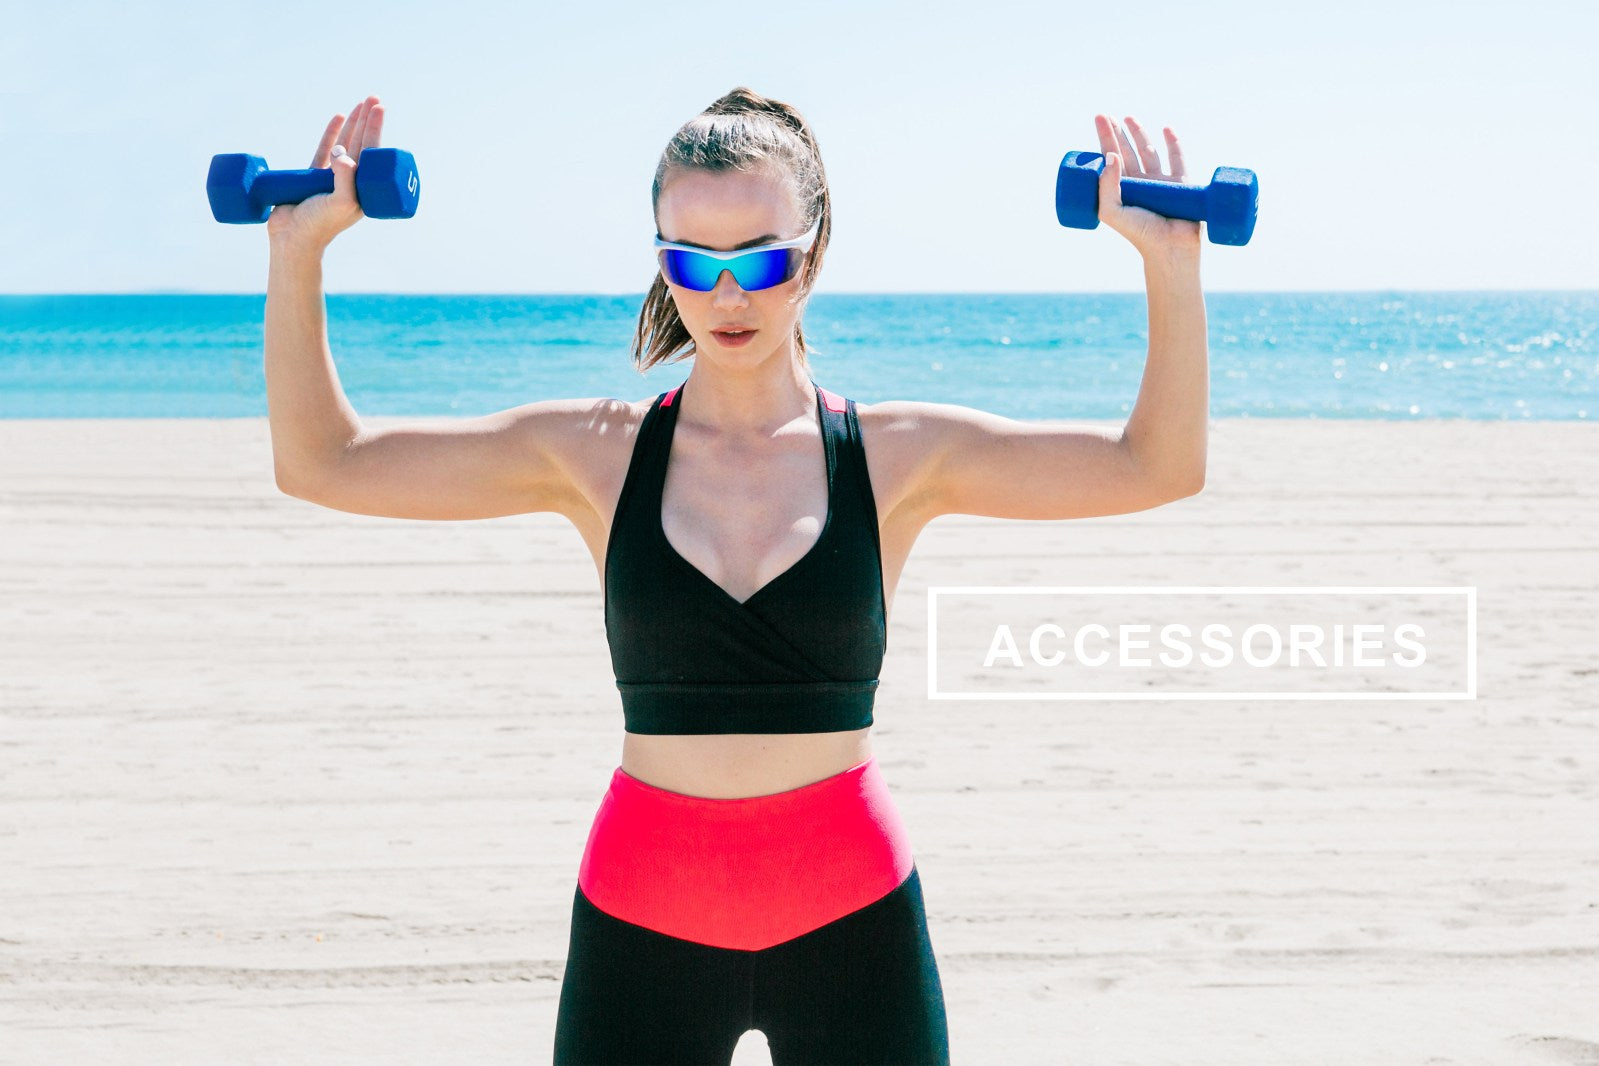 TangoFit Active Accessories